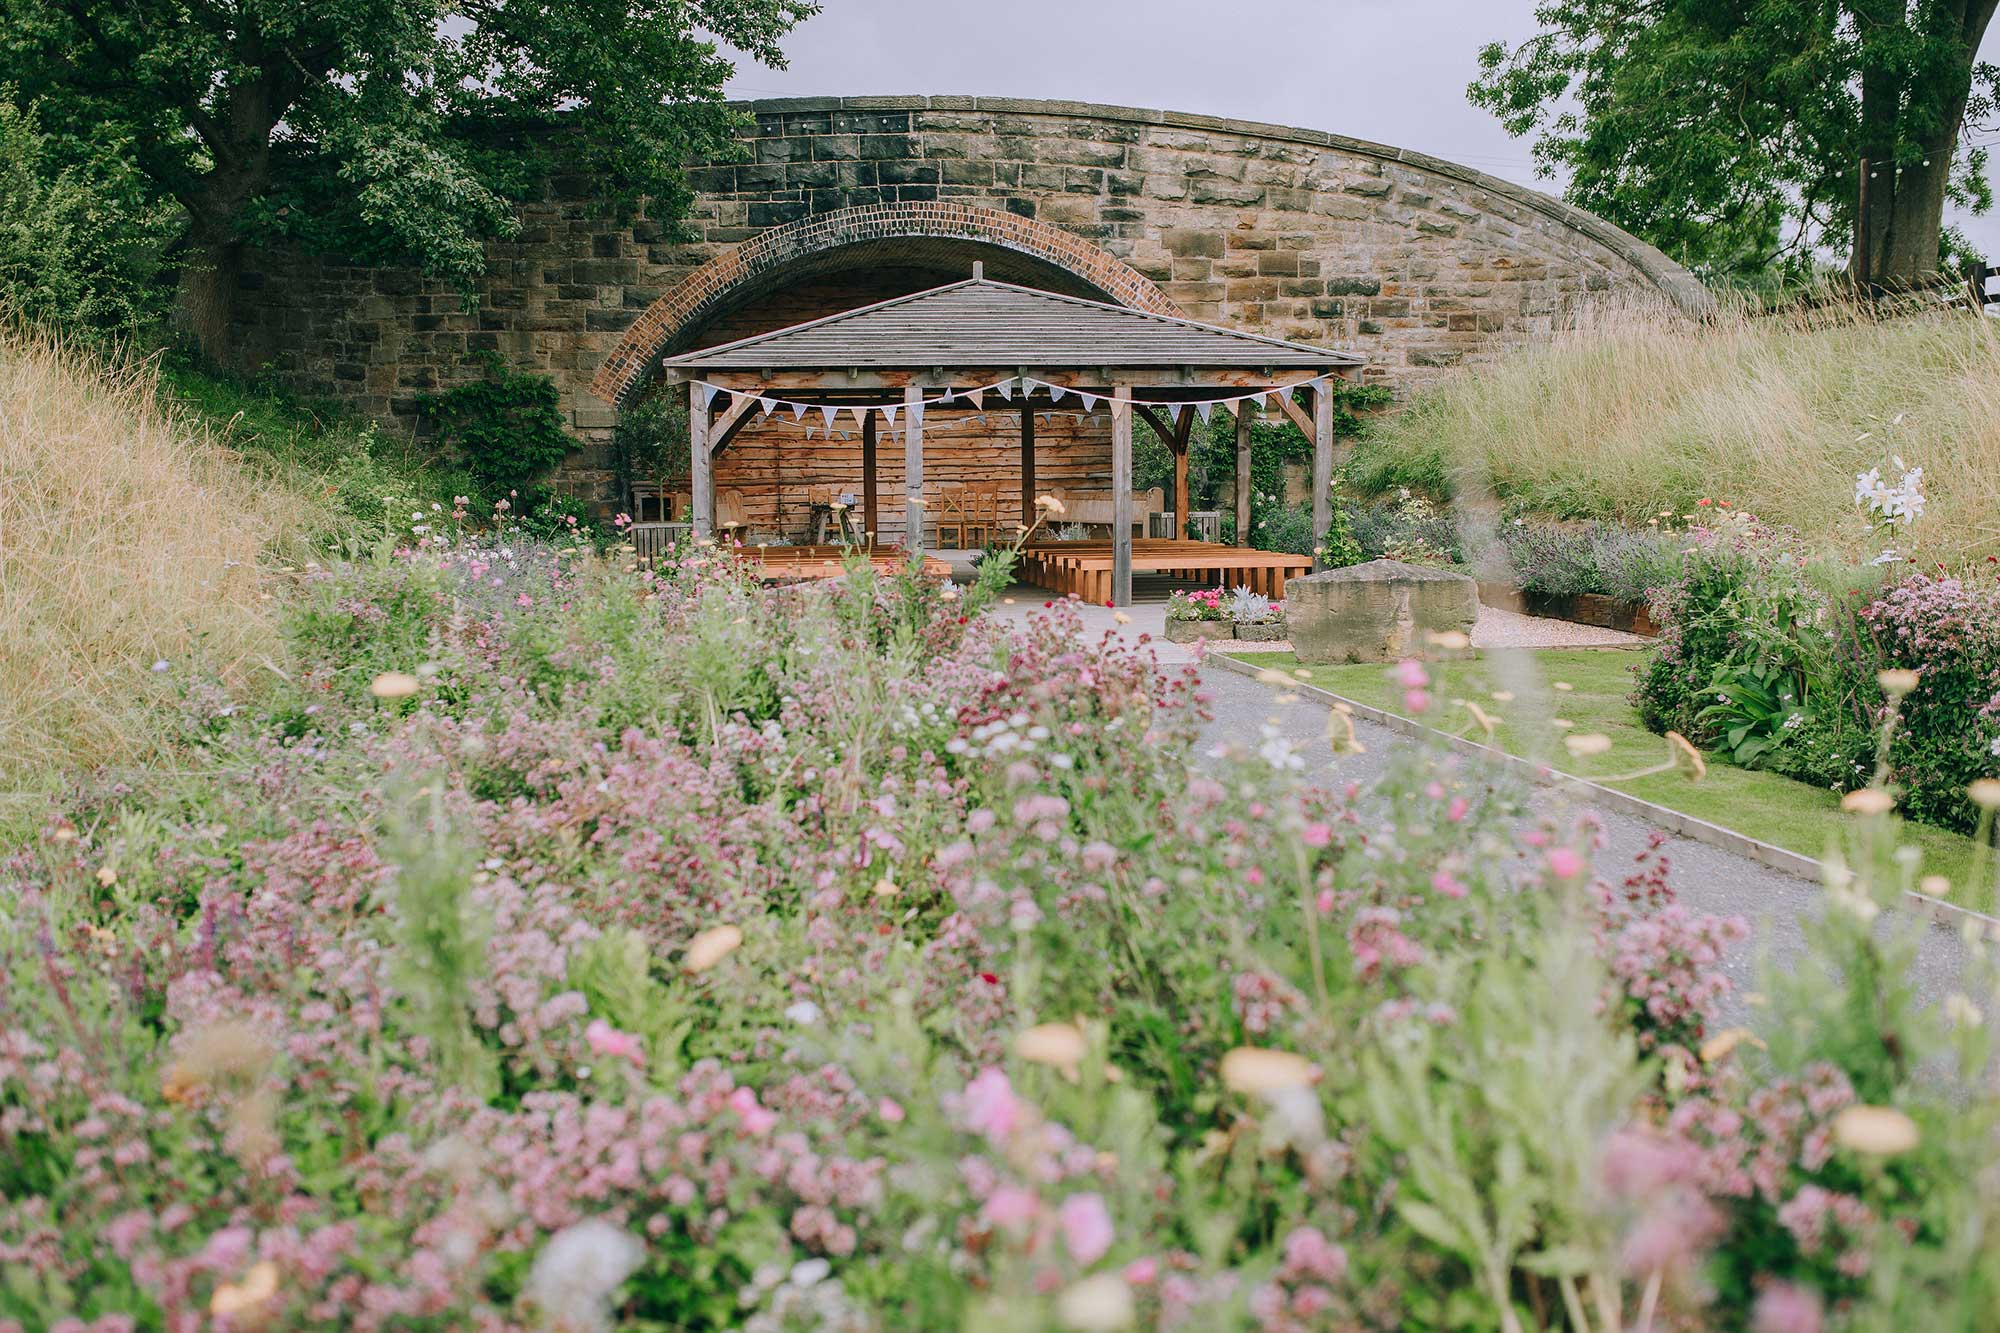 the outdoor ceremony area at Tower Hill Barns in full bloom with summer wildflowers lining the aisle and grounds; Nat Overthrow Photography